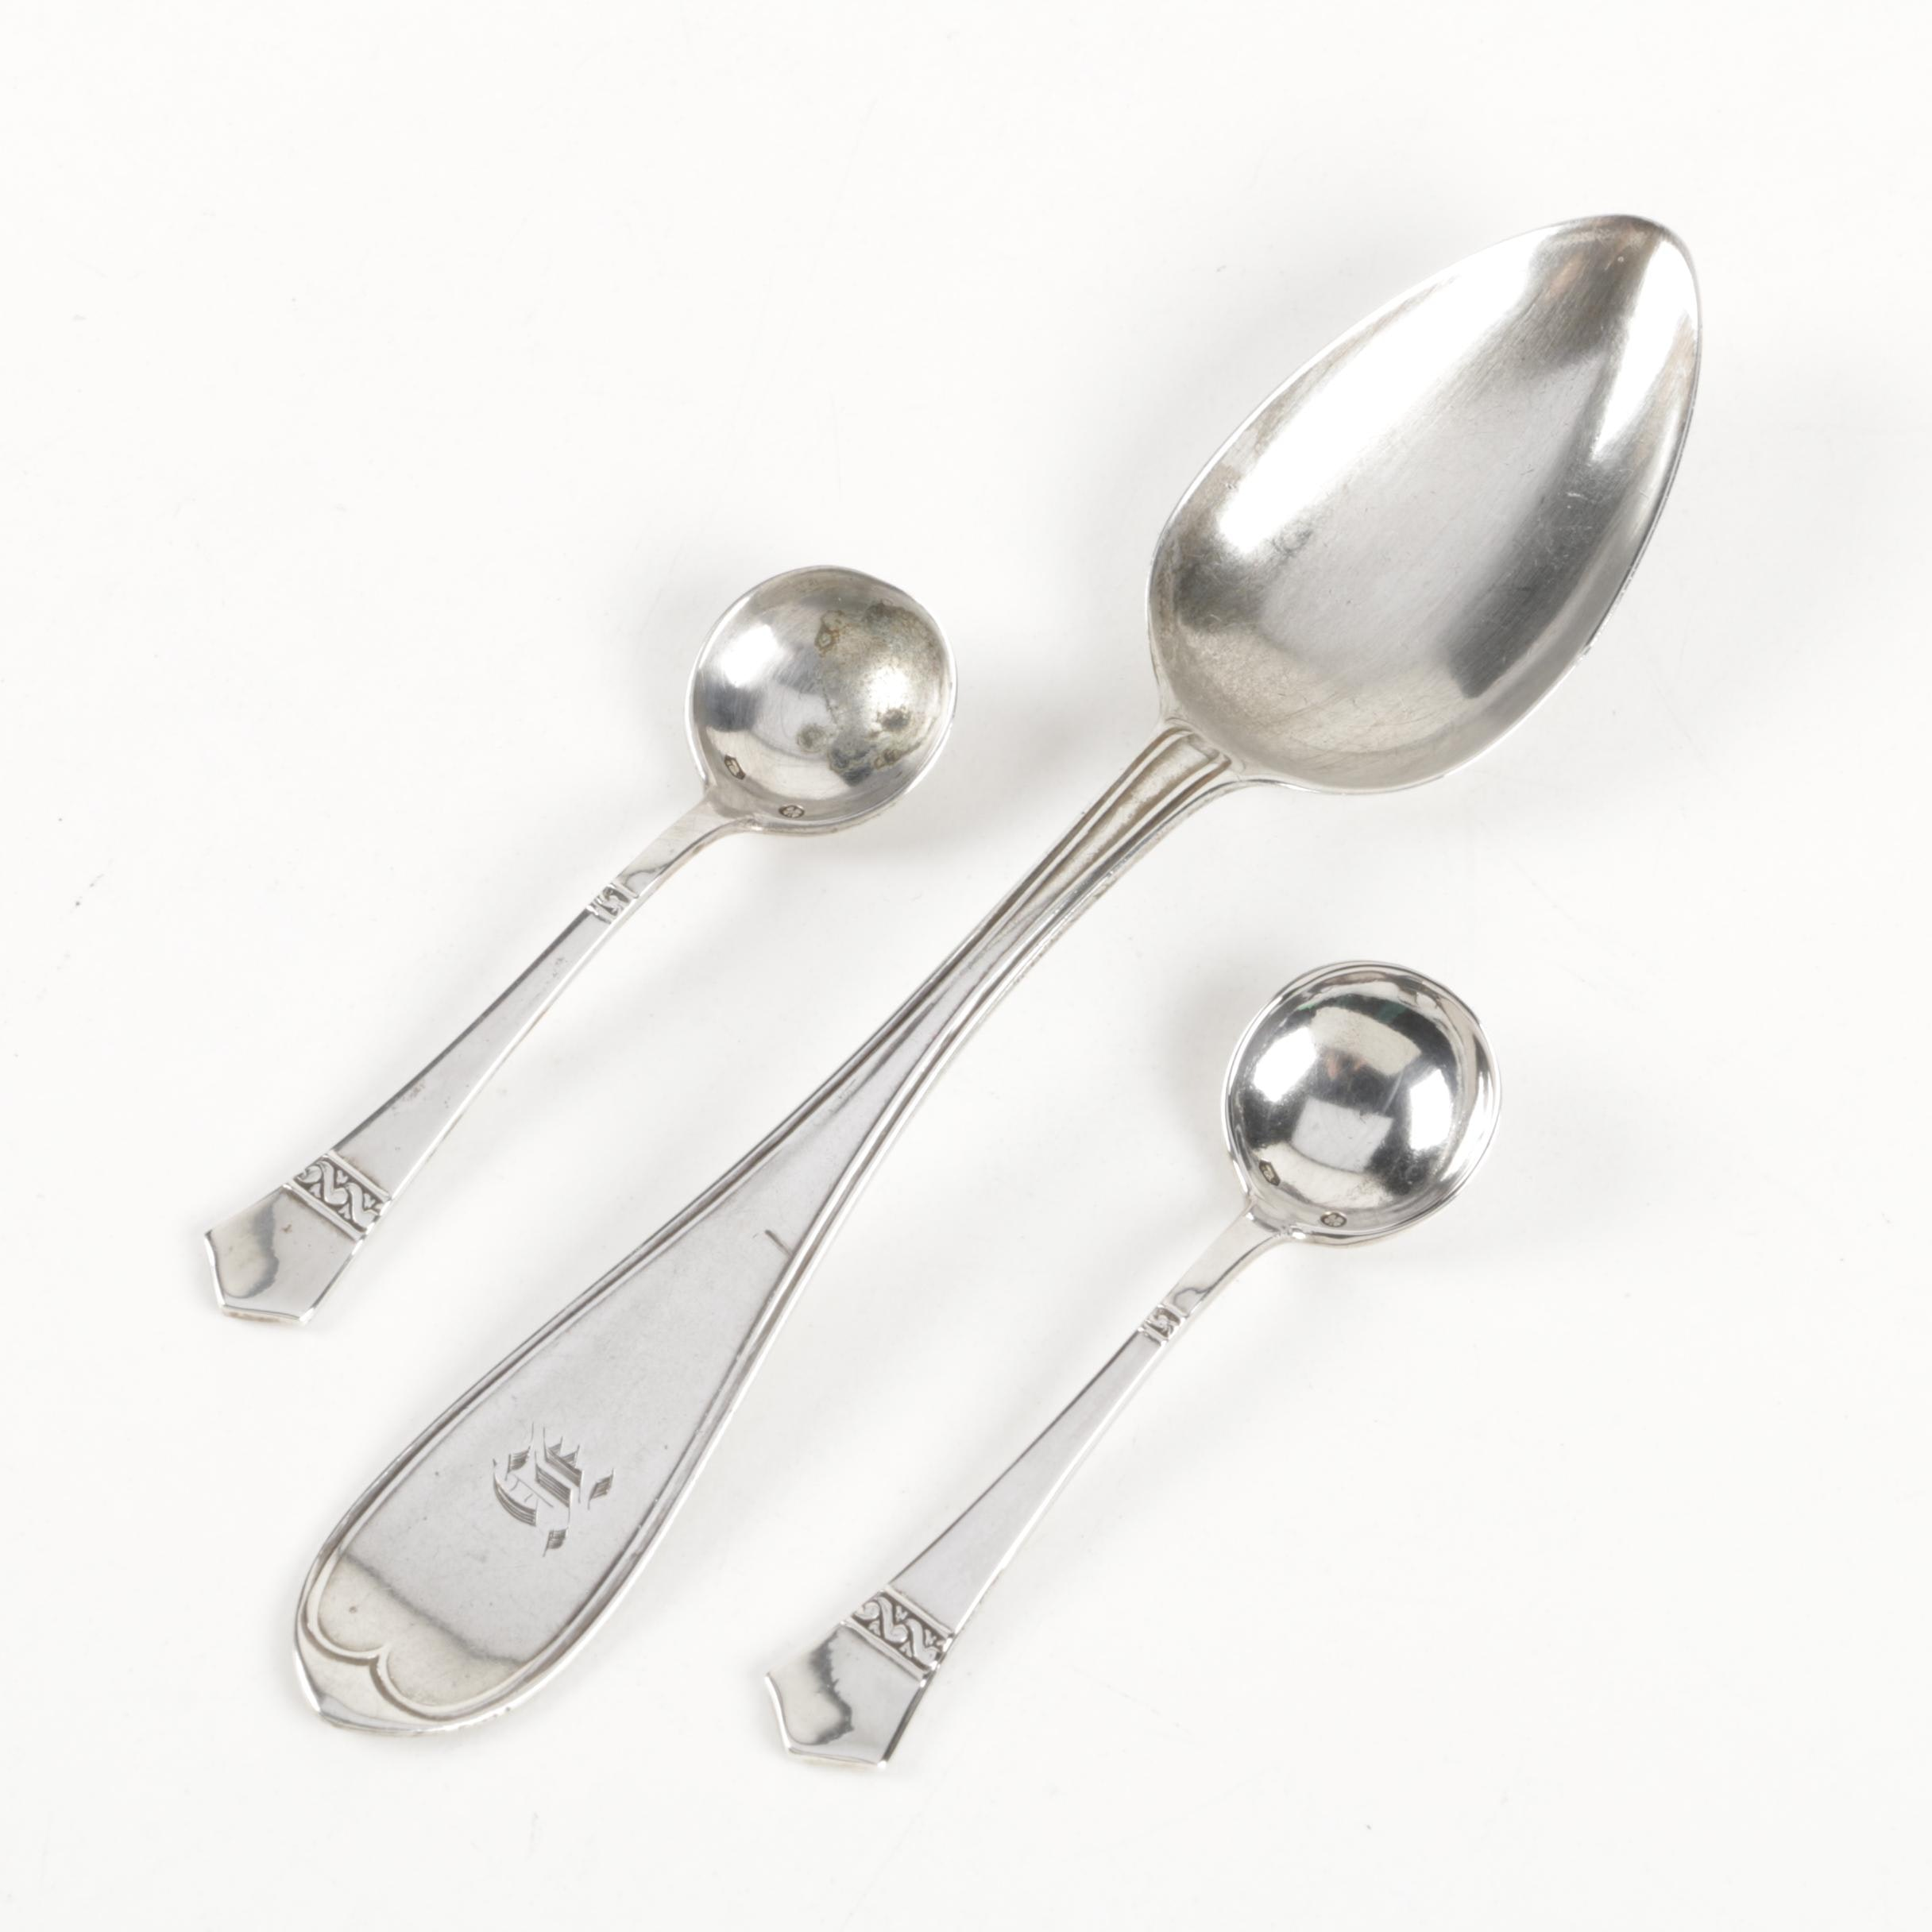 19th Century 800 Silver Spoon with Dubarry Handled Salt Spoons